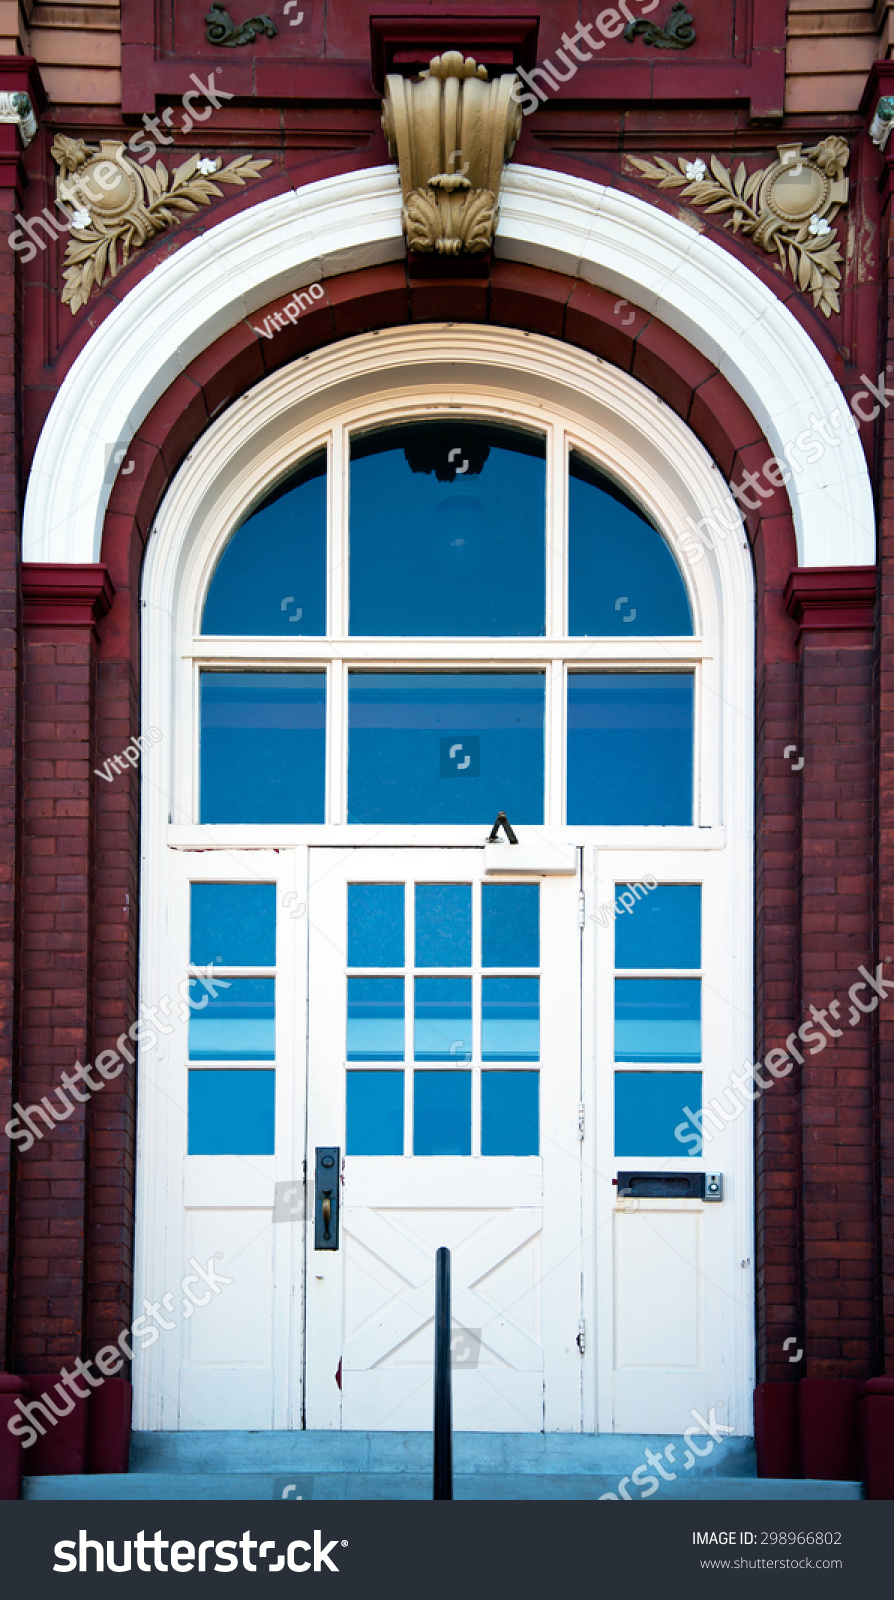 Large Arched Entrance Door With Glass Windows In A Brick Building With Stucco Embossed Exterior